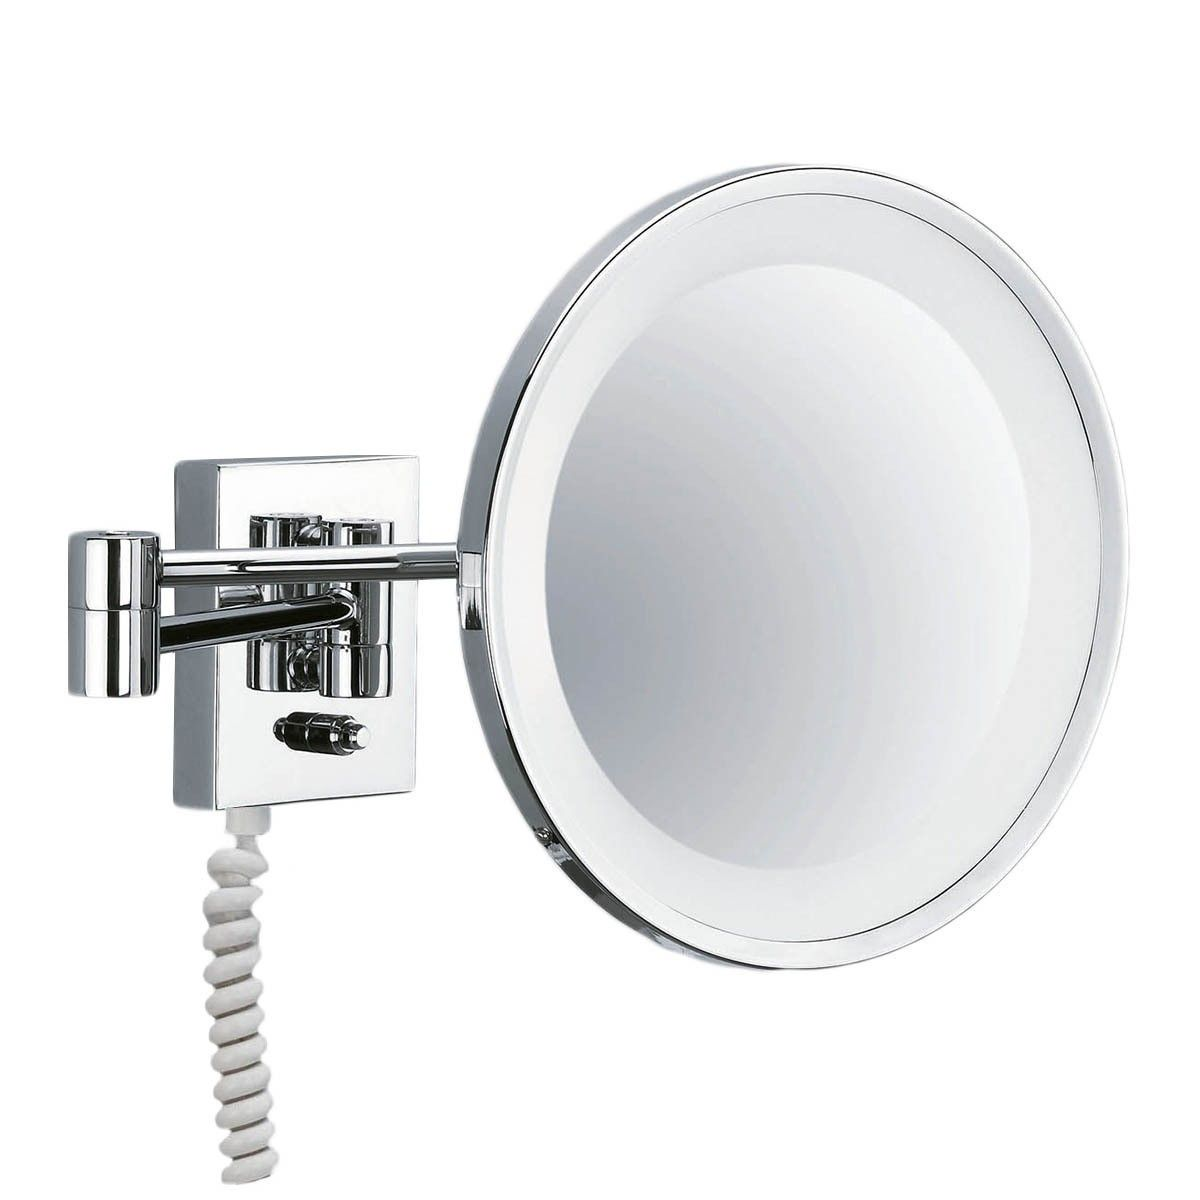 Smile 705 Illuminated Magnifying Mirror Magnifying Mirror Magnifier Mirror